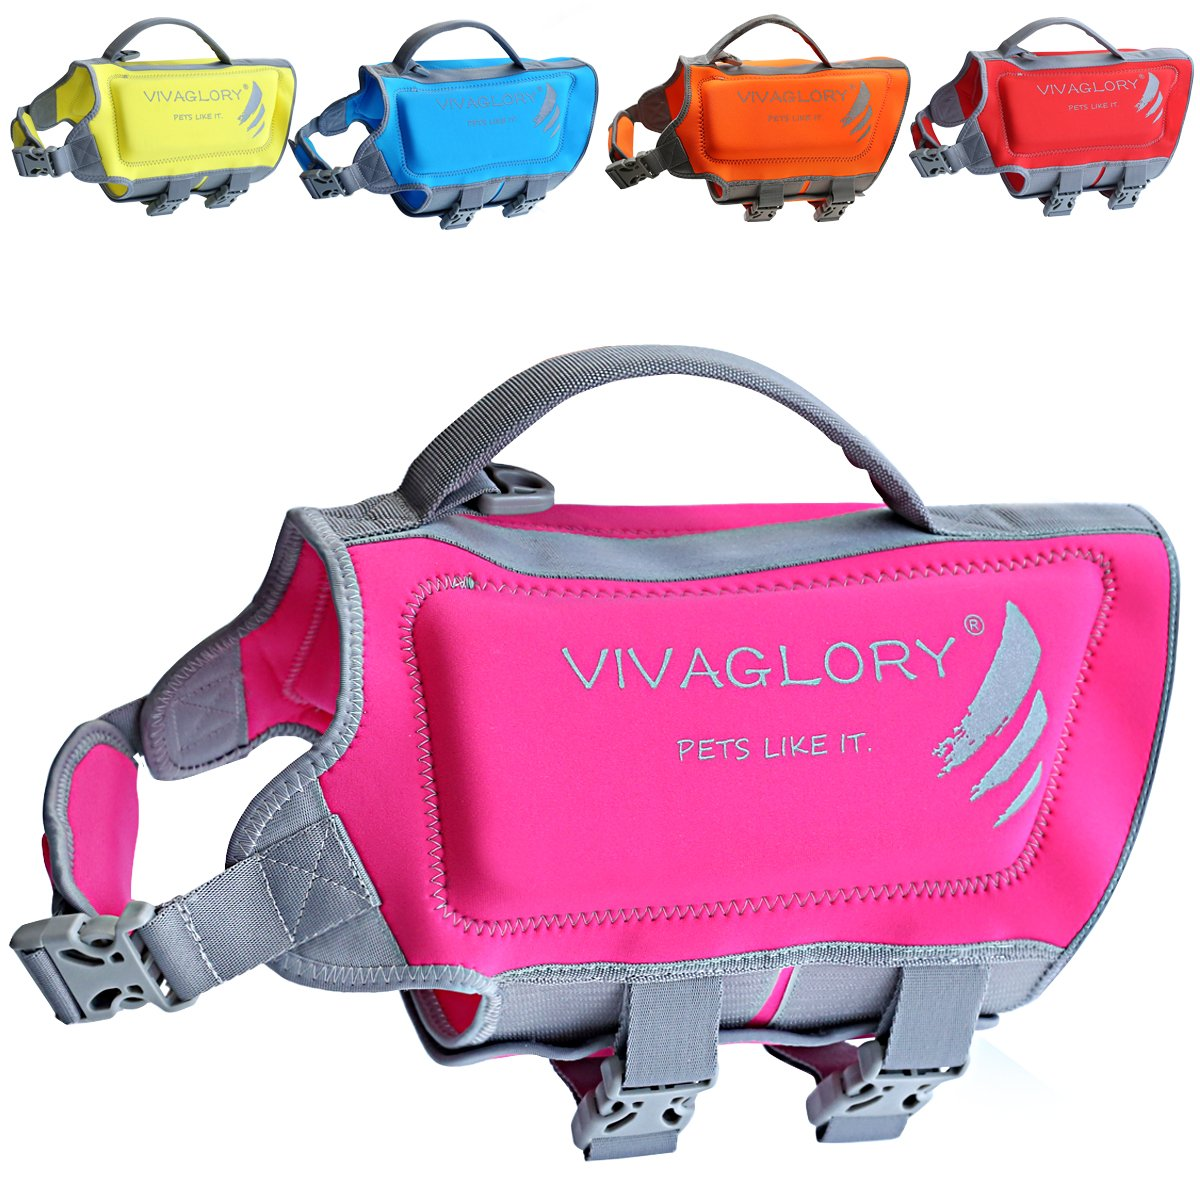 Vivaglory Pet Life Vest, Skin-Friendly Neoprene Dog Safety Vest with Superior Buoyancy and Rescue Handle, Reflective & Adjustable, Pink, Medium by Vivaglory (Image #1)